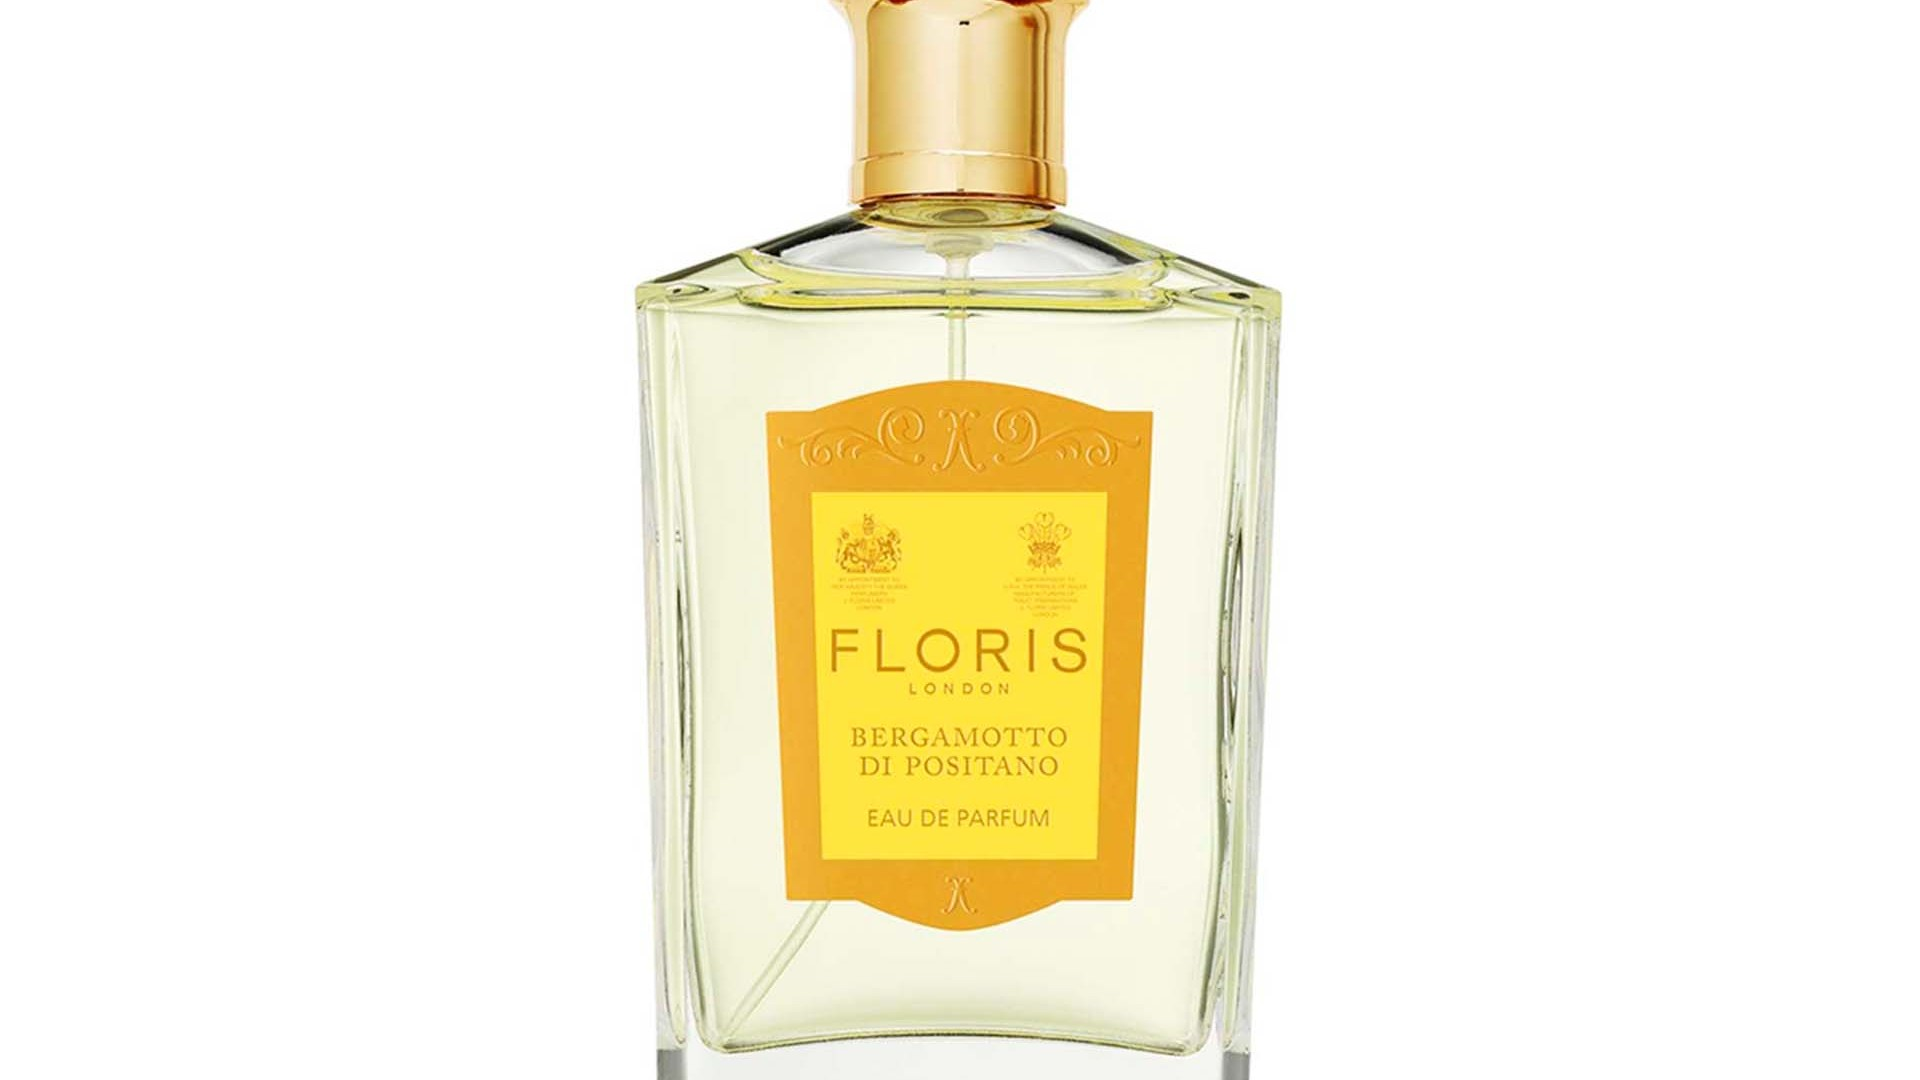 Begamotto di Positano by Floris mens fragrance